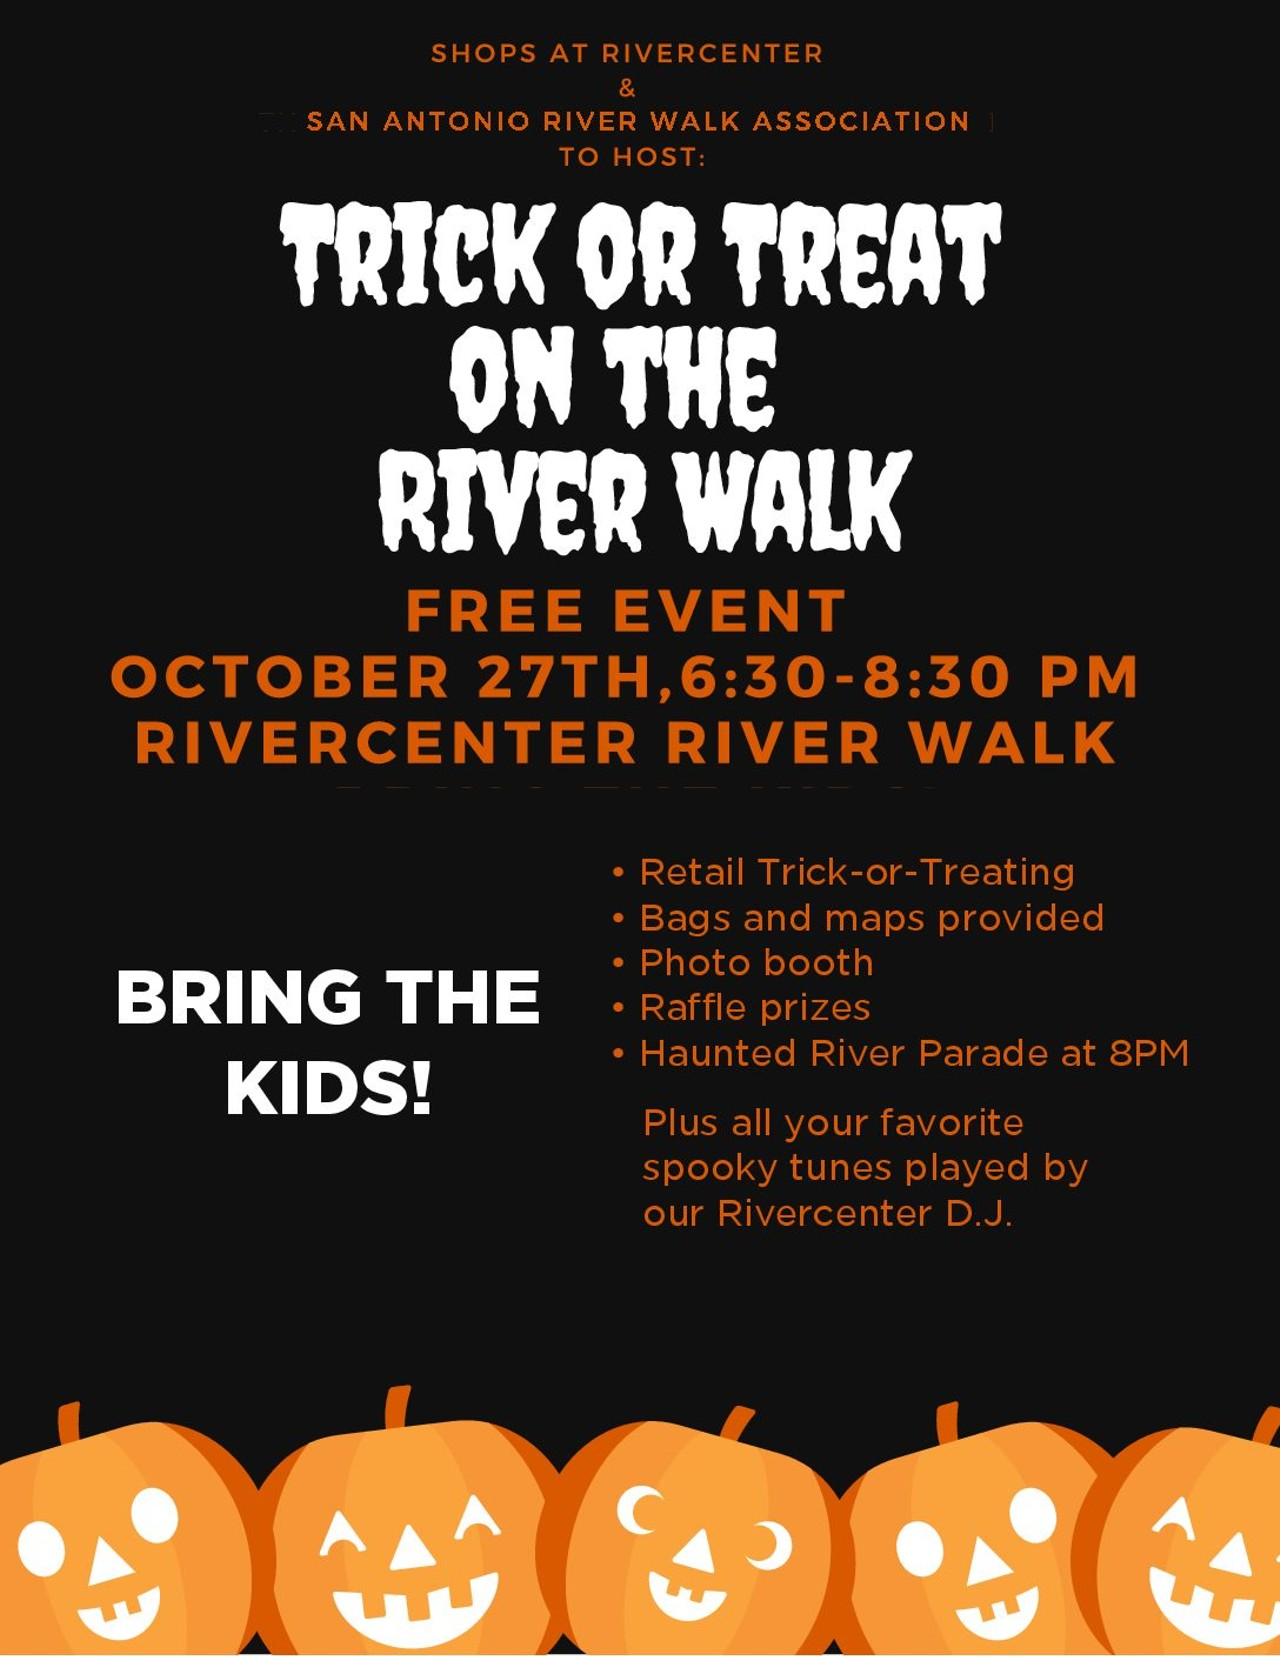 Mall Trick-or-Treating! - facebook.com